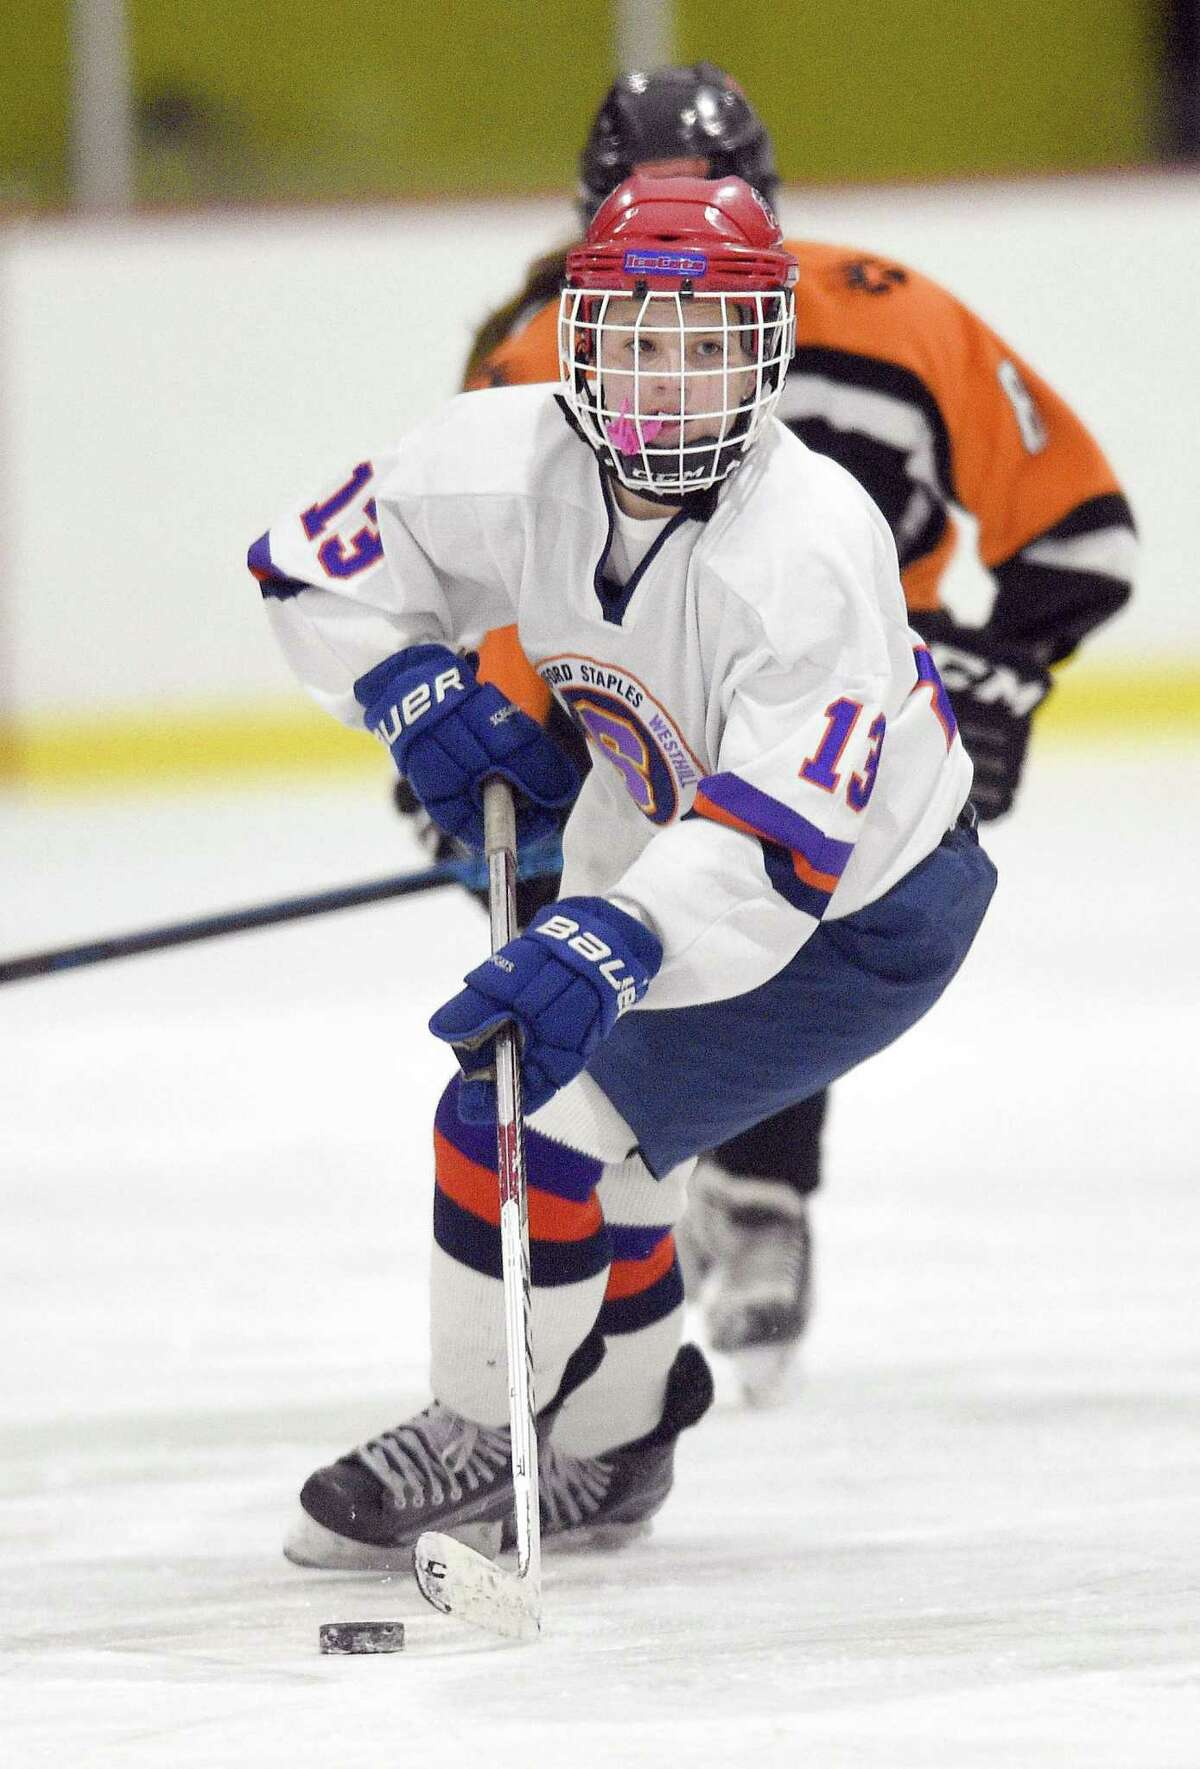 Stamford-Westhill-Staples Co-op freshman center Meadow Gilchrist.